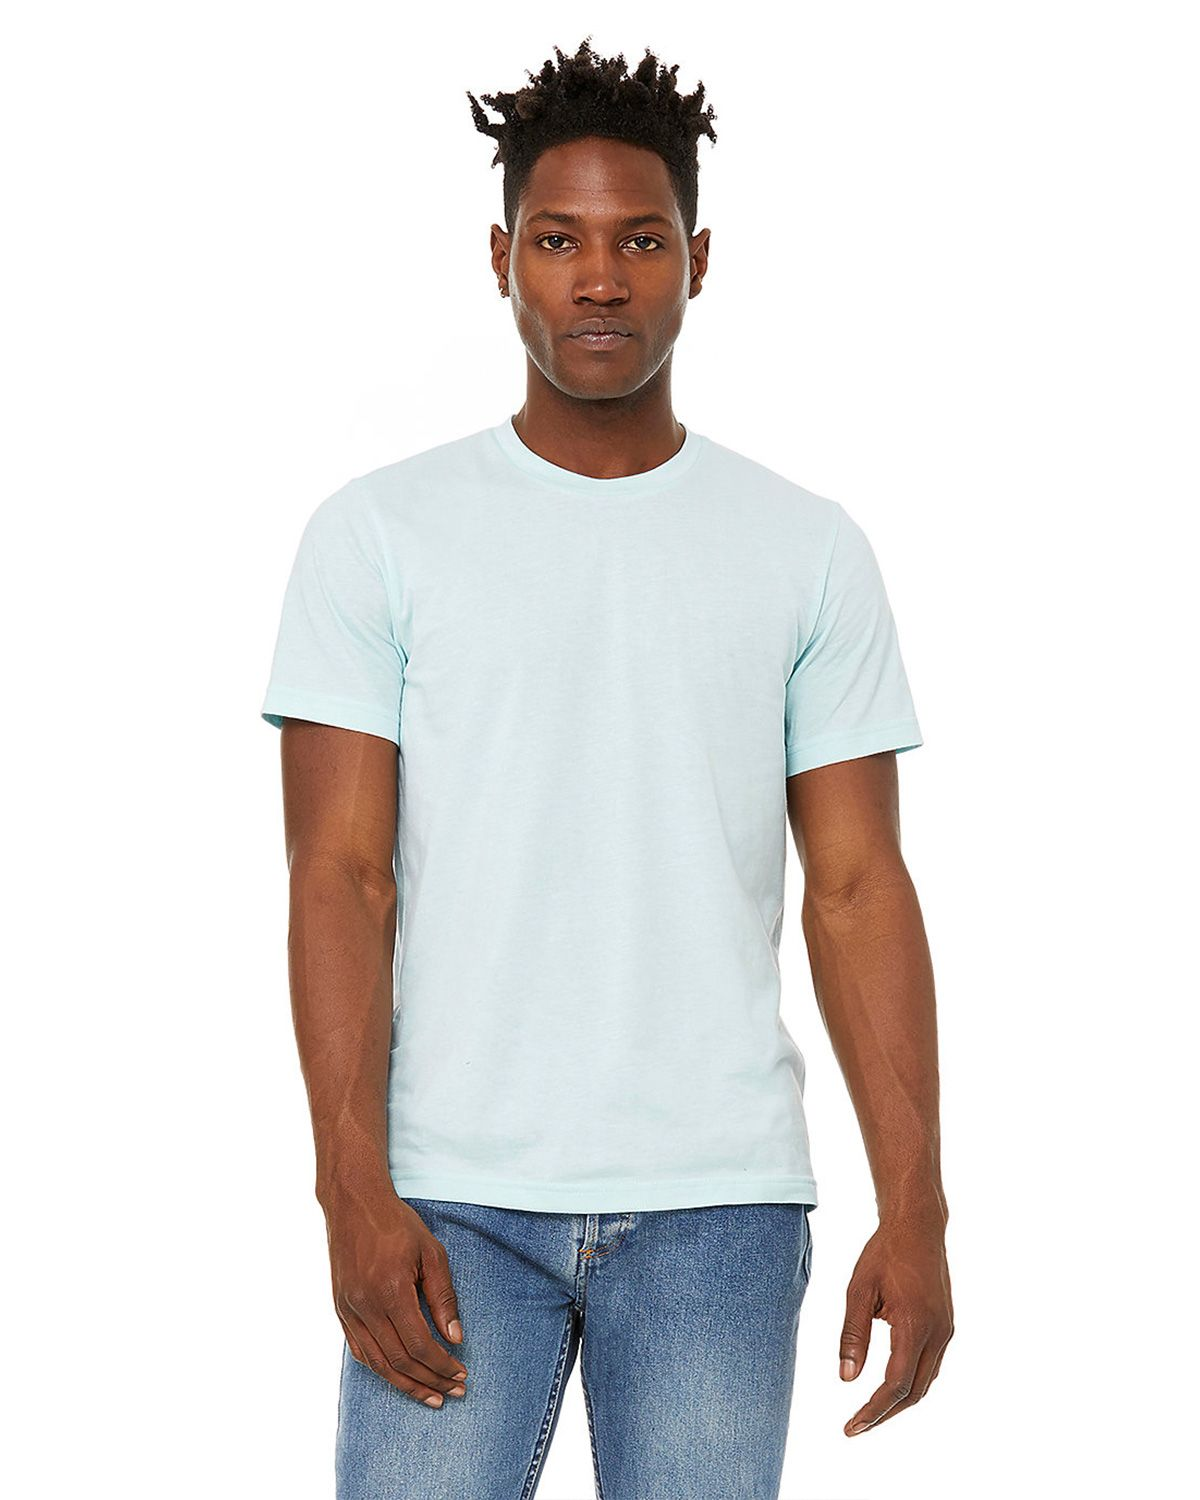 Bella + Canvas 3301 Sueded Unisex Tee - Heather Ice Blue - XS from Bella + Canvas